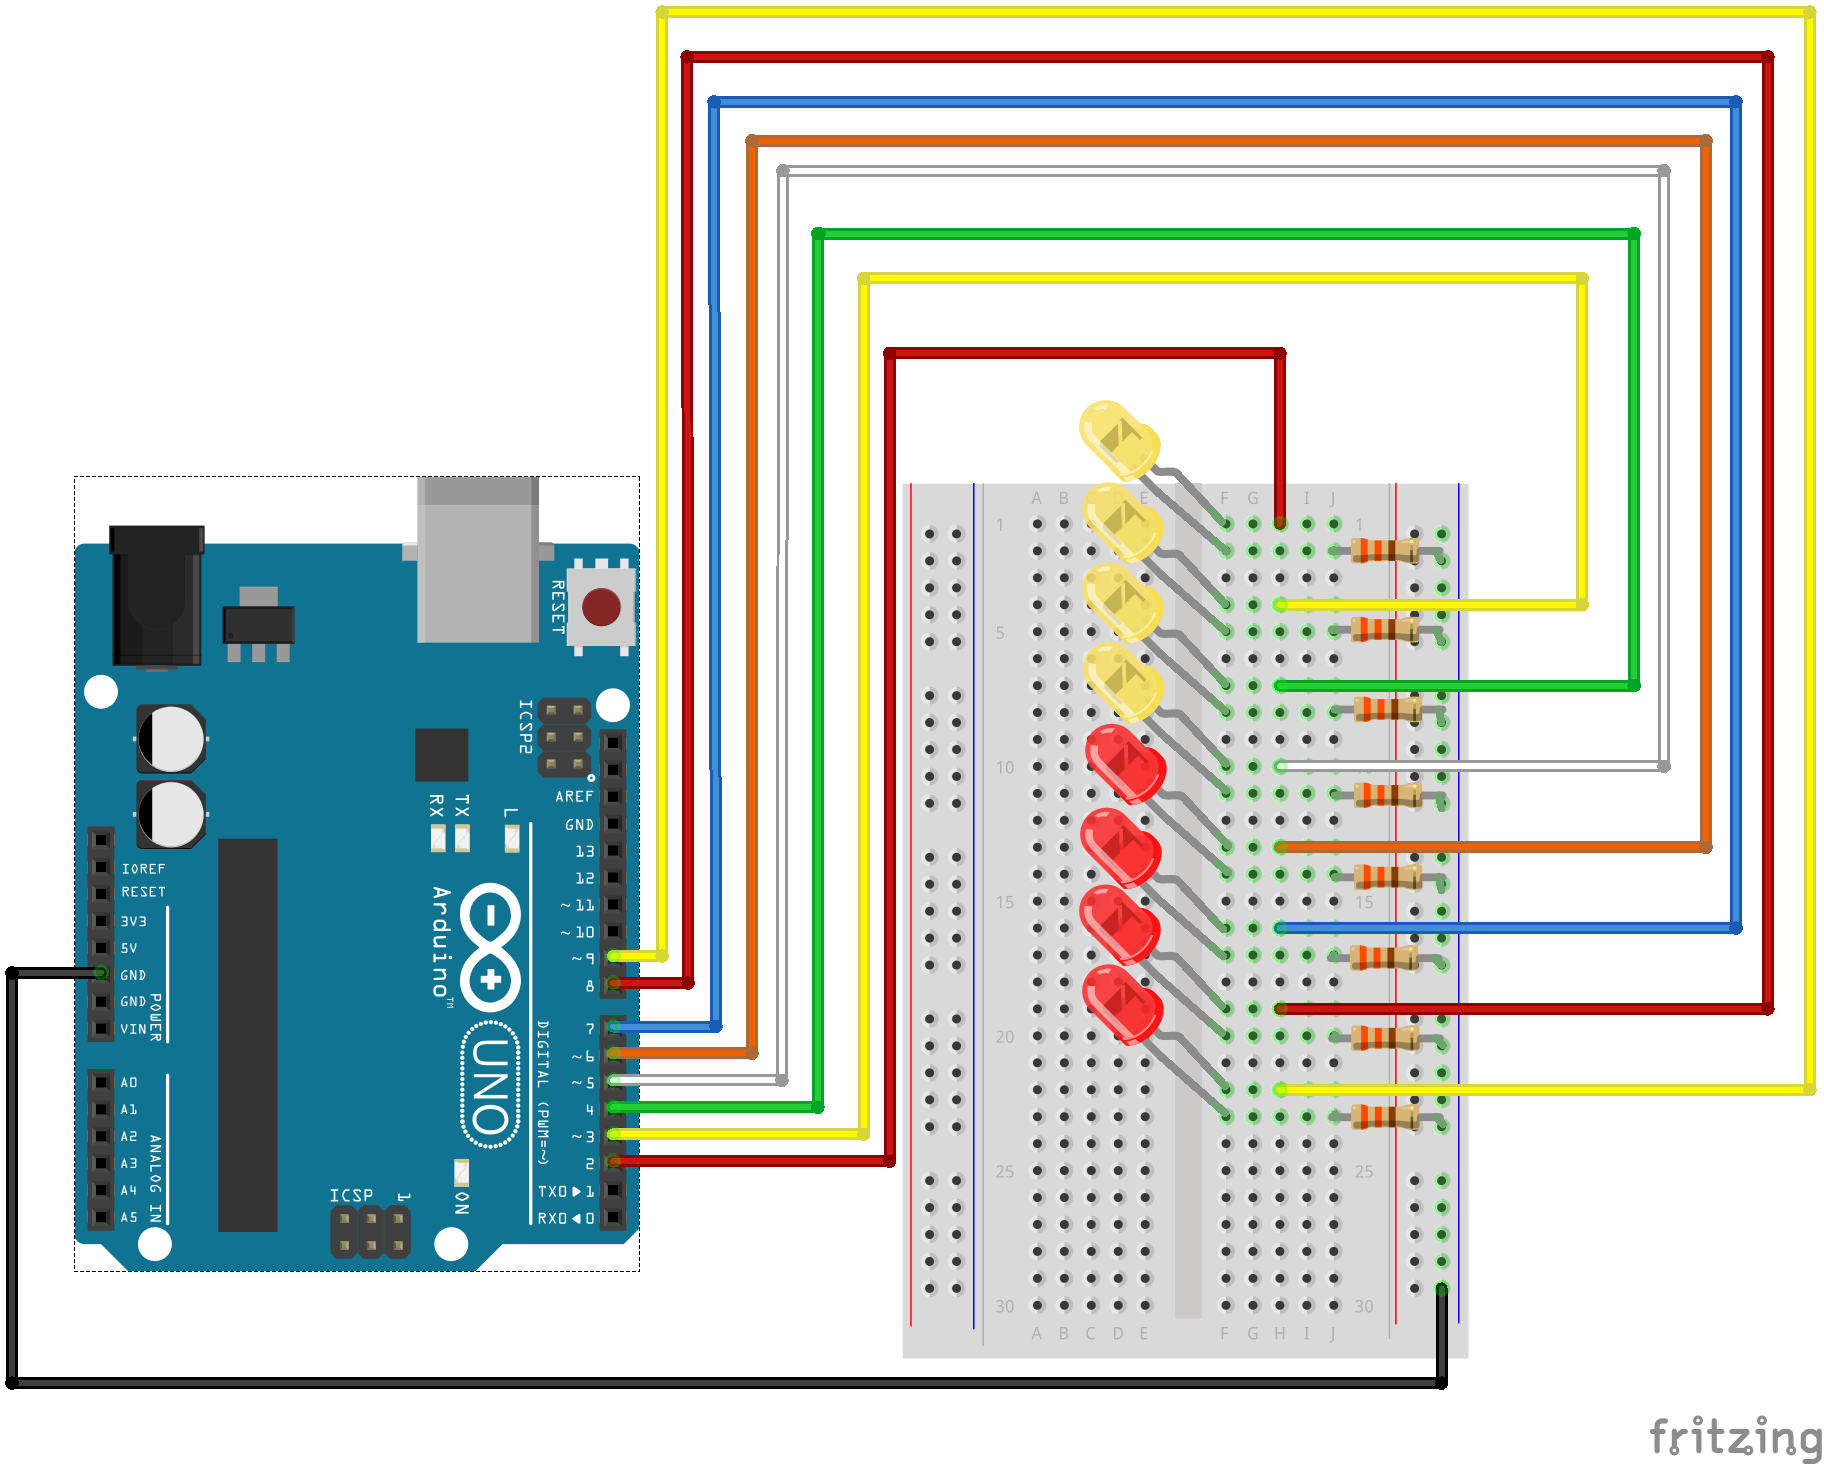 Sik Experiment Guide For Arduino V33 Very Simple Led Flashing With Sound Electronic Projects Circuits Alt Text